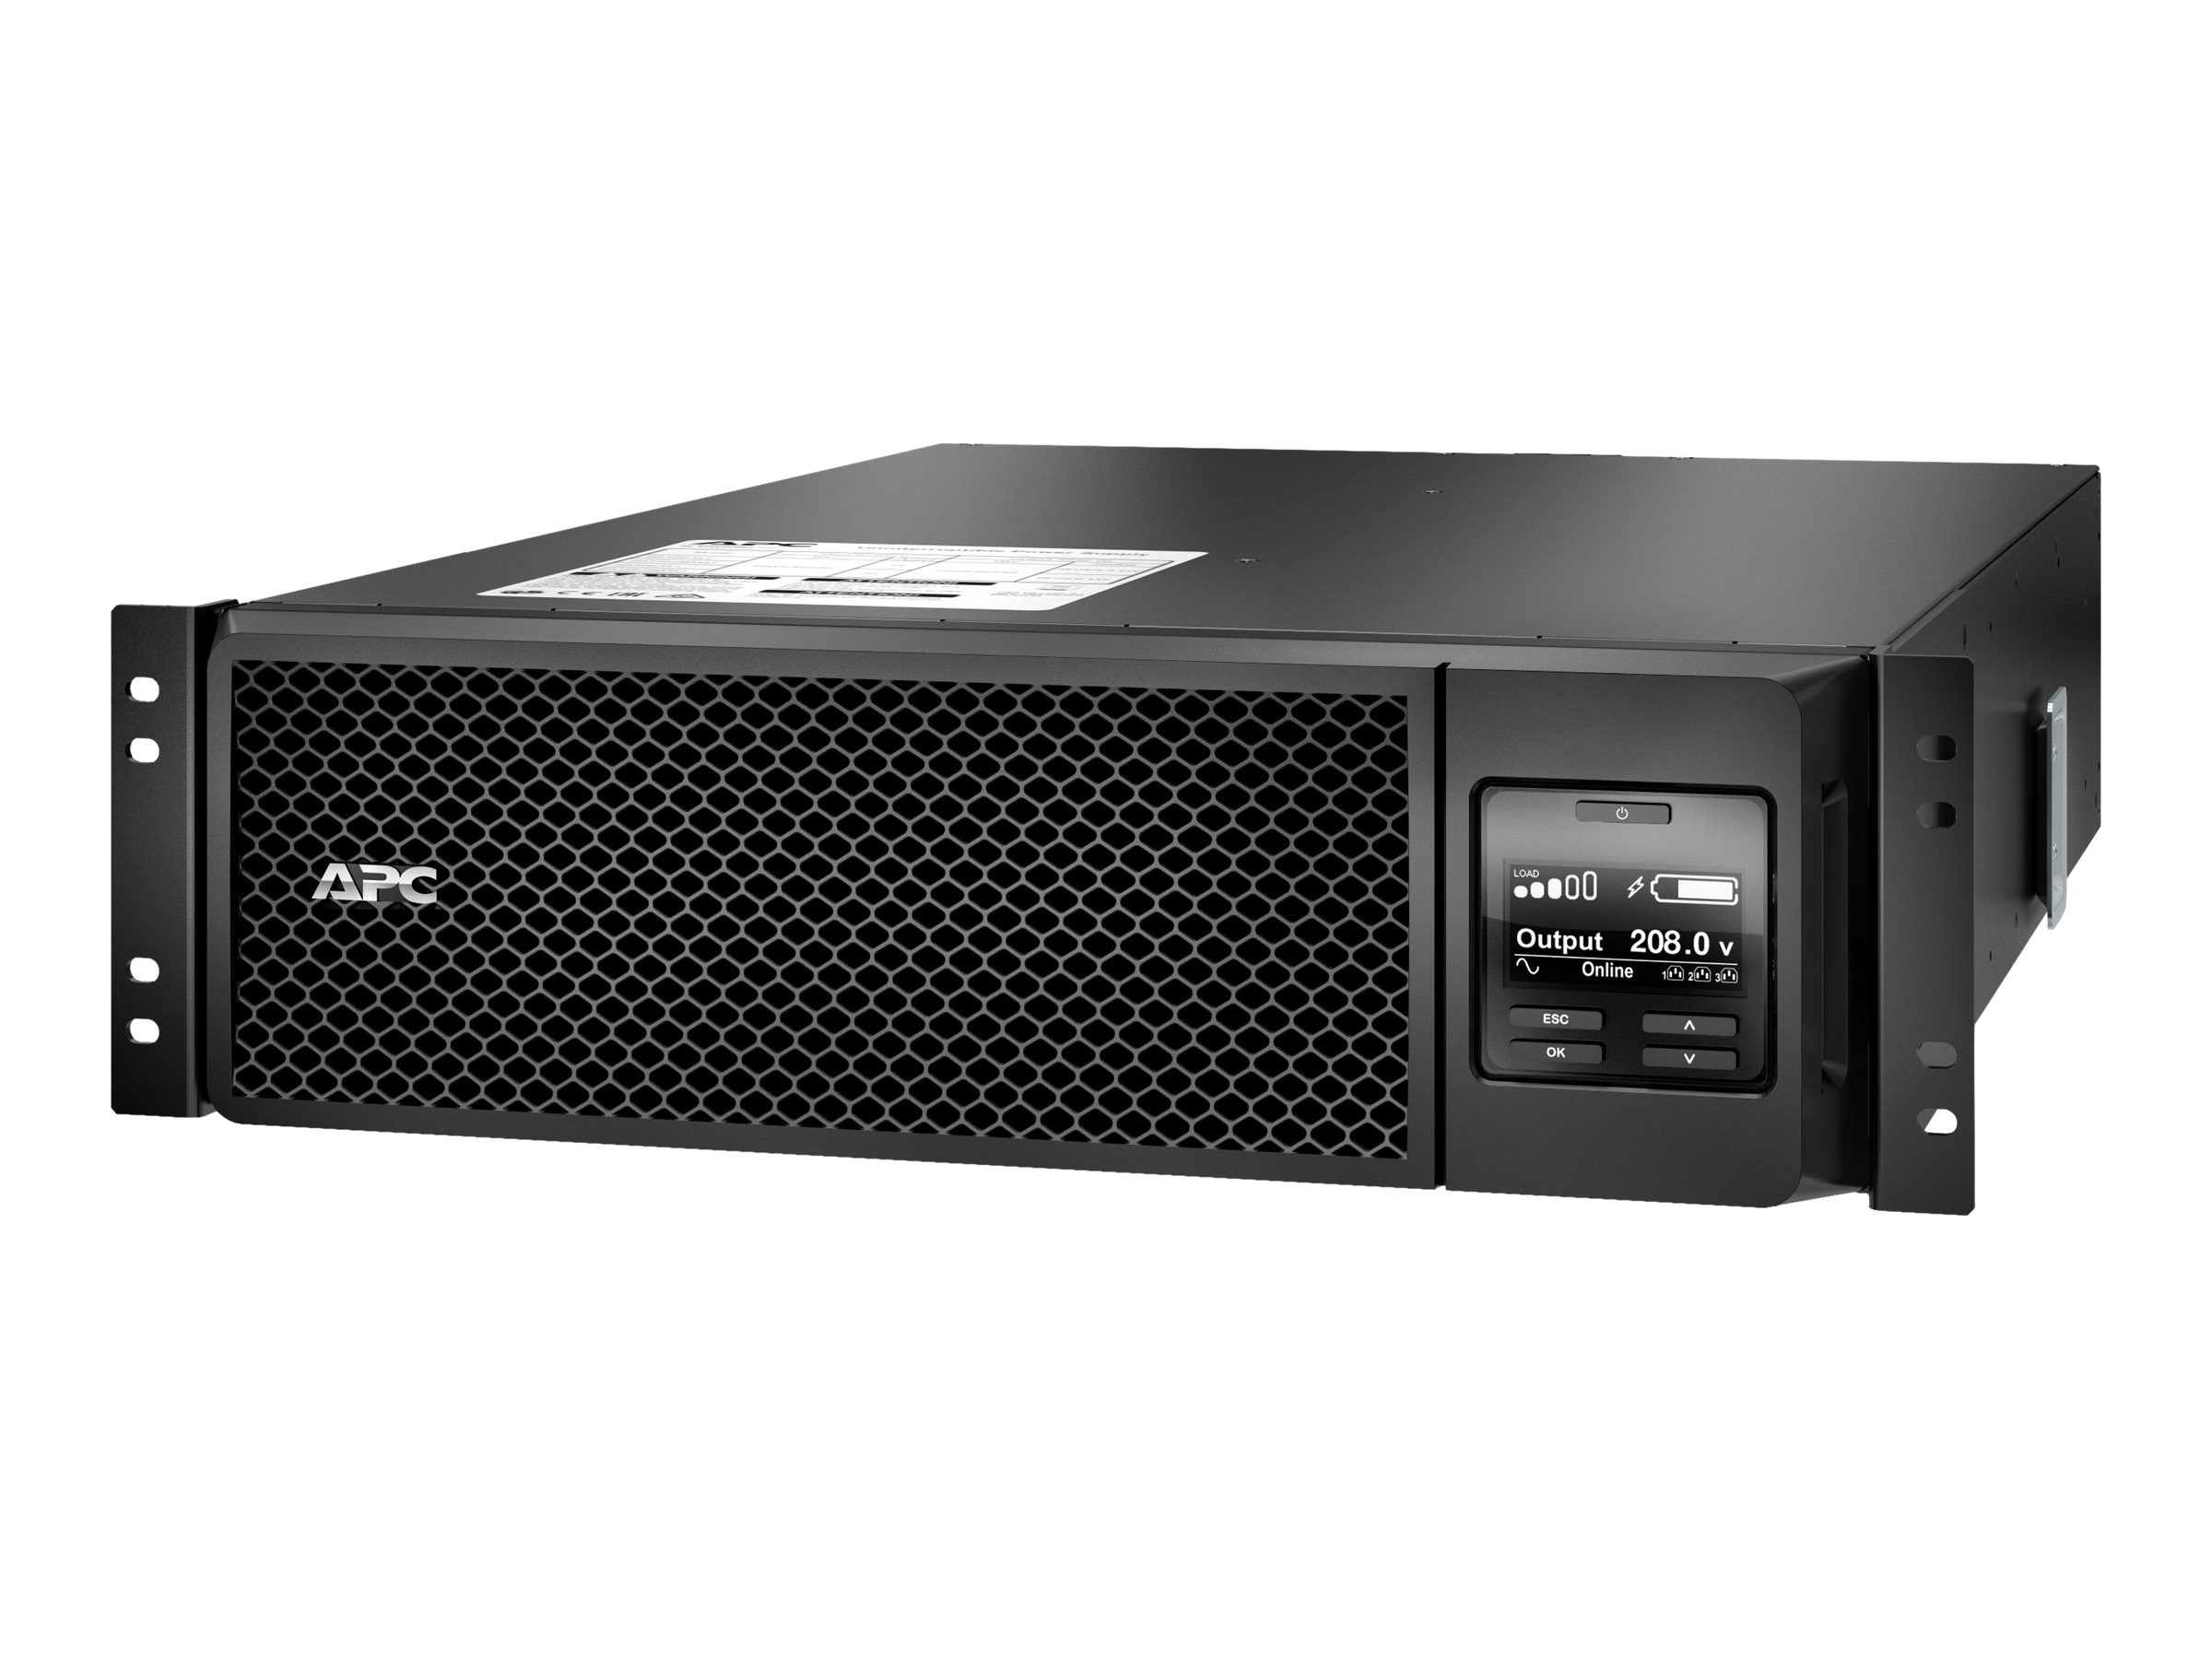 APC Smart-UPS SRT 5000VA 4500W 230V Int'l 3U RM HW Input (10) Outlets Extended Runtime, SRT5KRMXLI, 18399398, Battery Backup/UPS